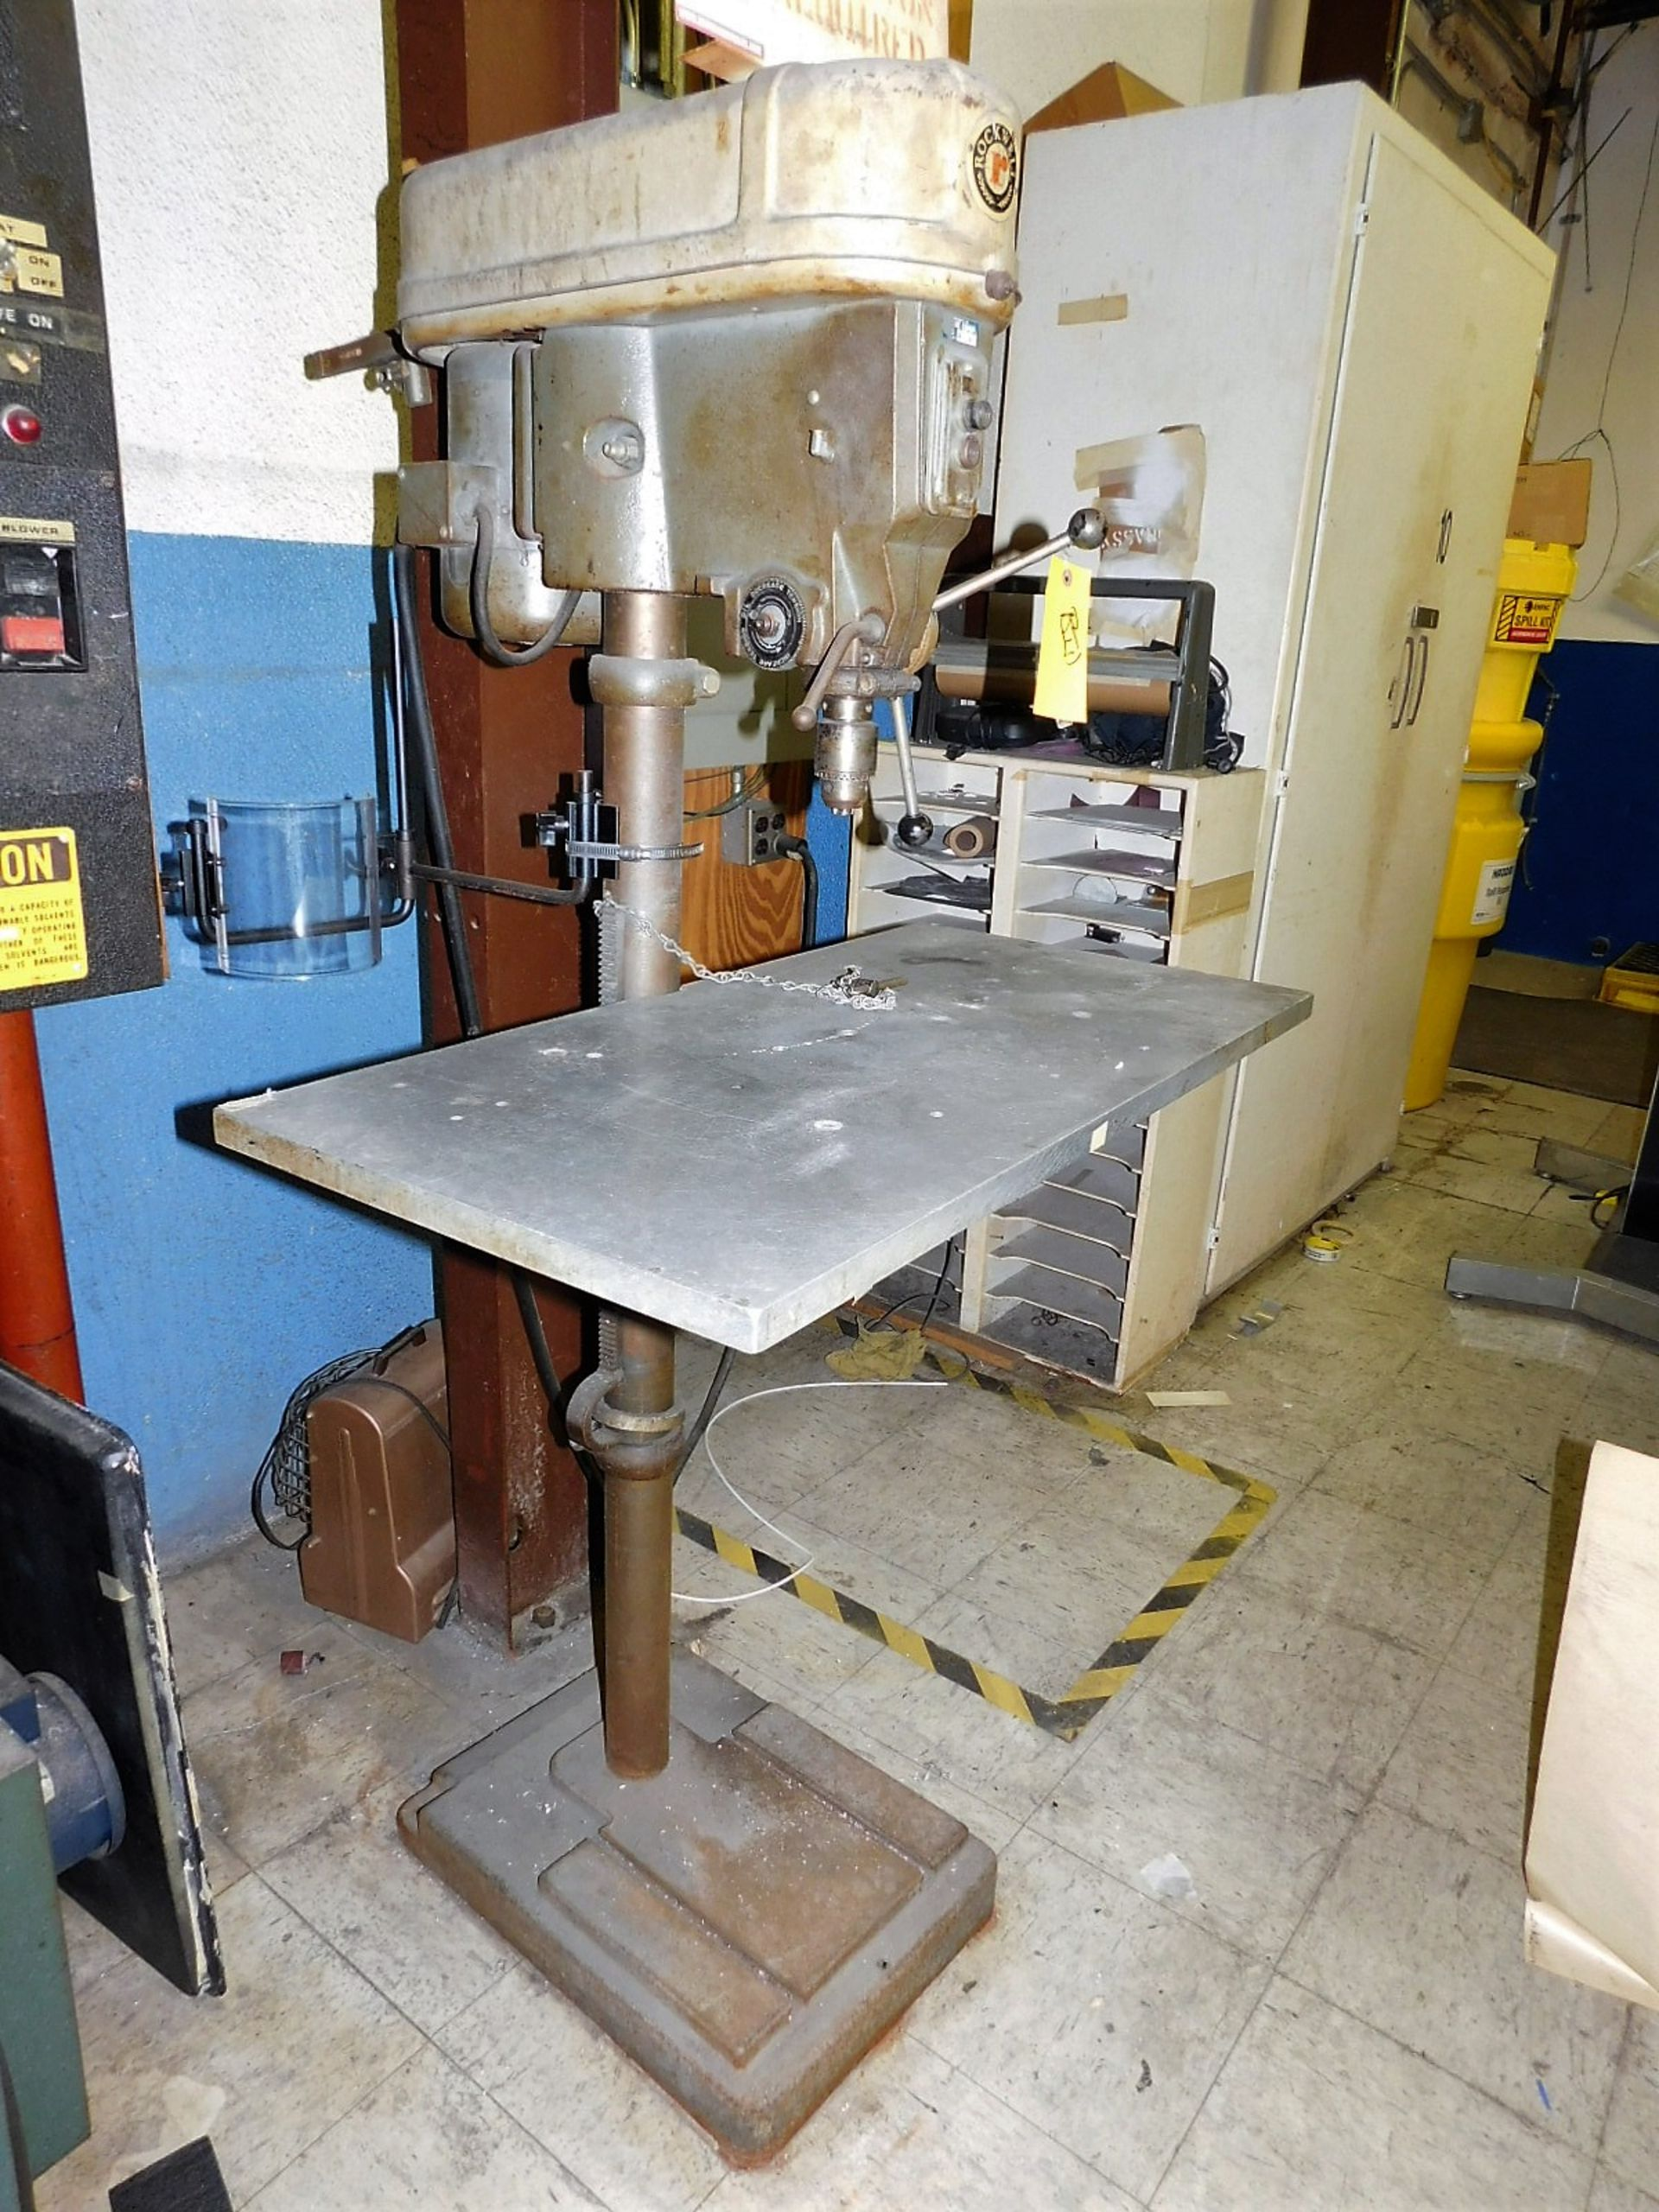 """Lot 30 - ROCKWELL 15"""" DRILL PRESS, MODEL 15-655, S/N 1463799, FLOOR STAND, VARIABLE SPEED"""